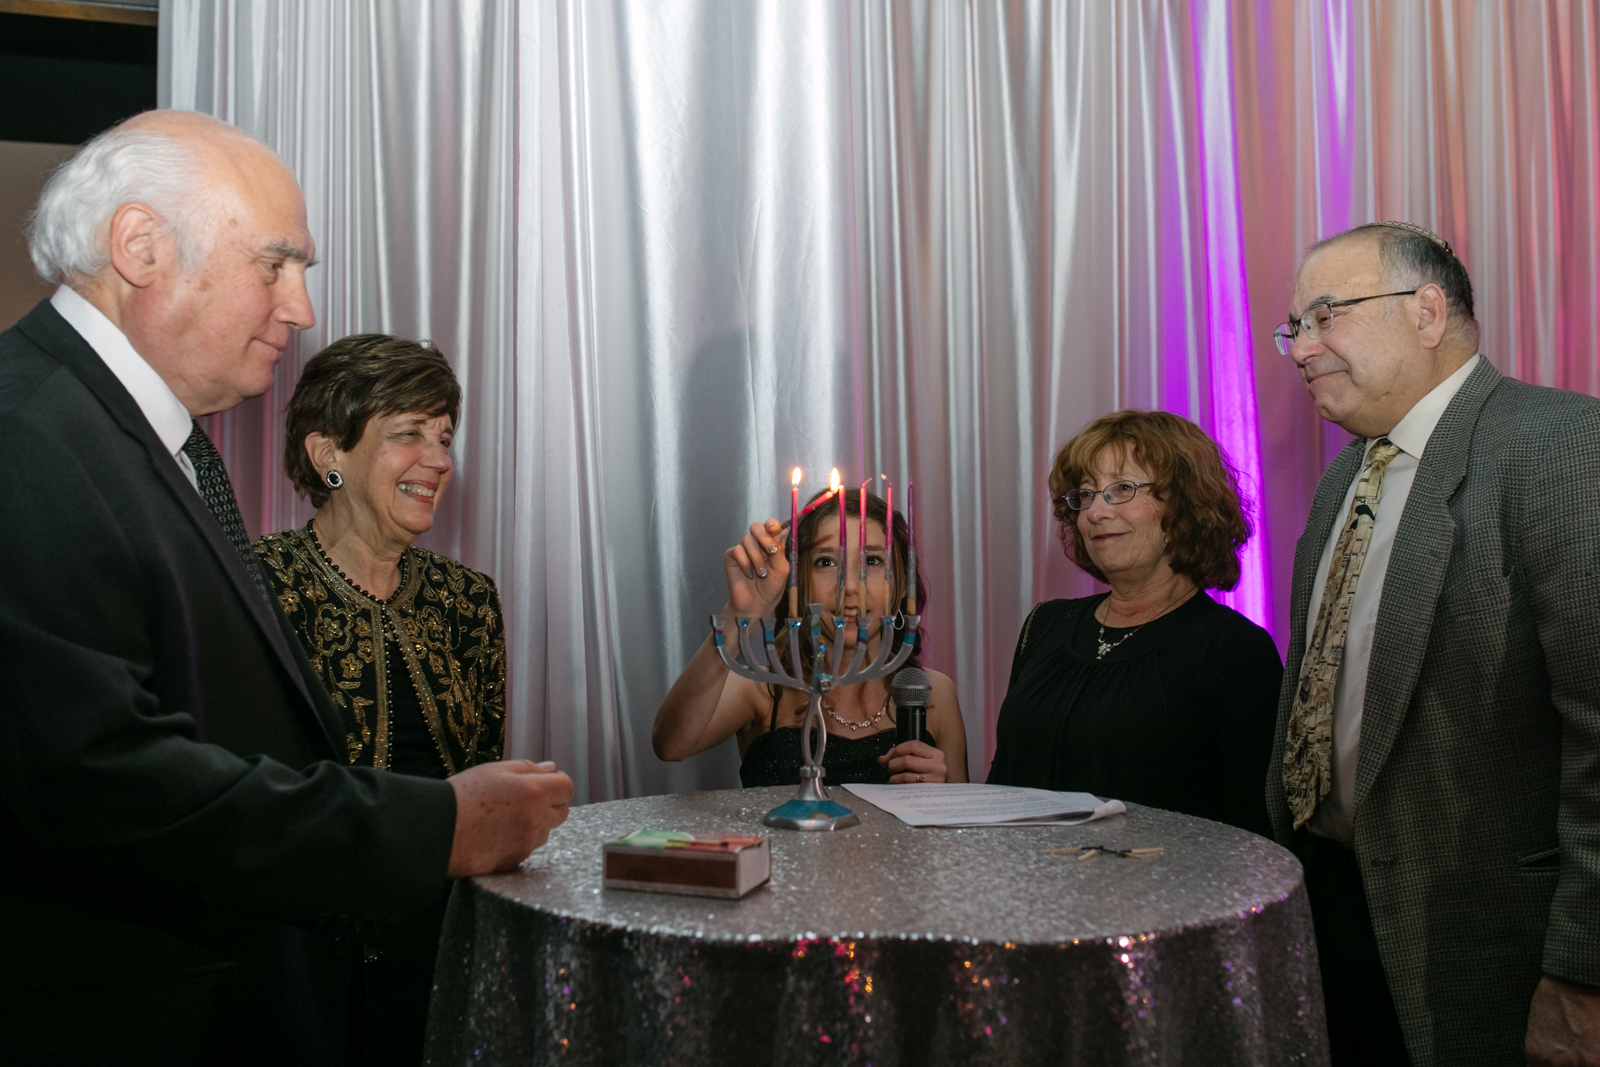 A girl lights the menorah during her bat mitzvah with her grandparents beside her